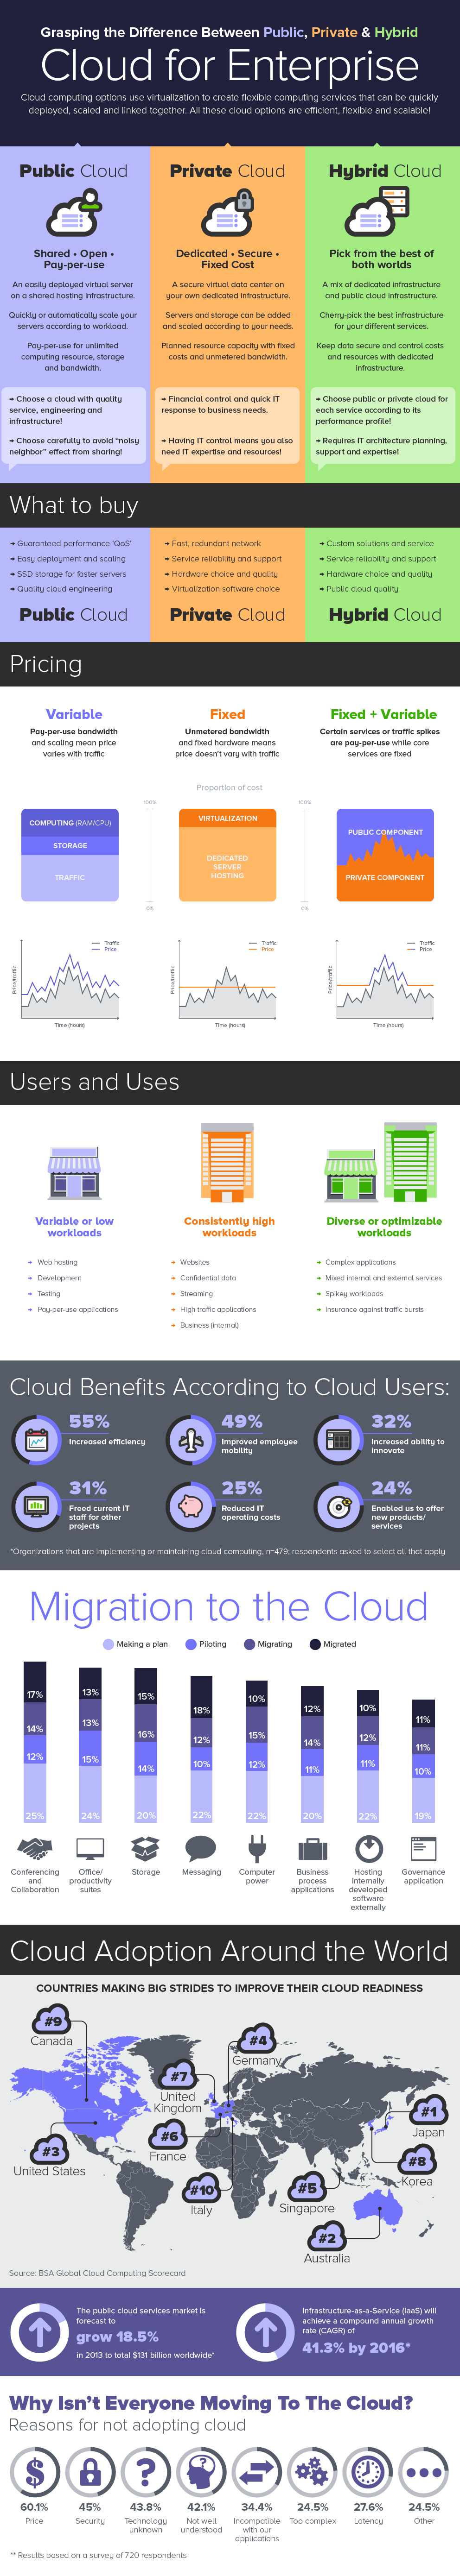 difference-public-private-hybrid-cloud